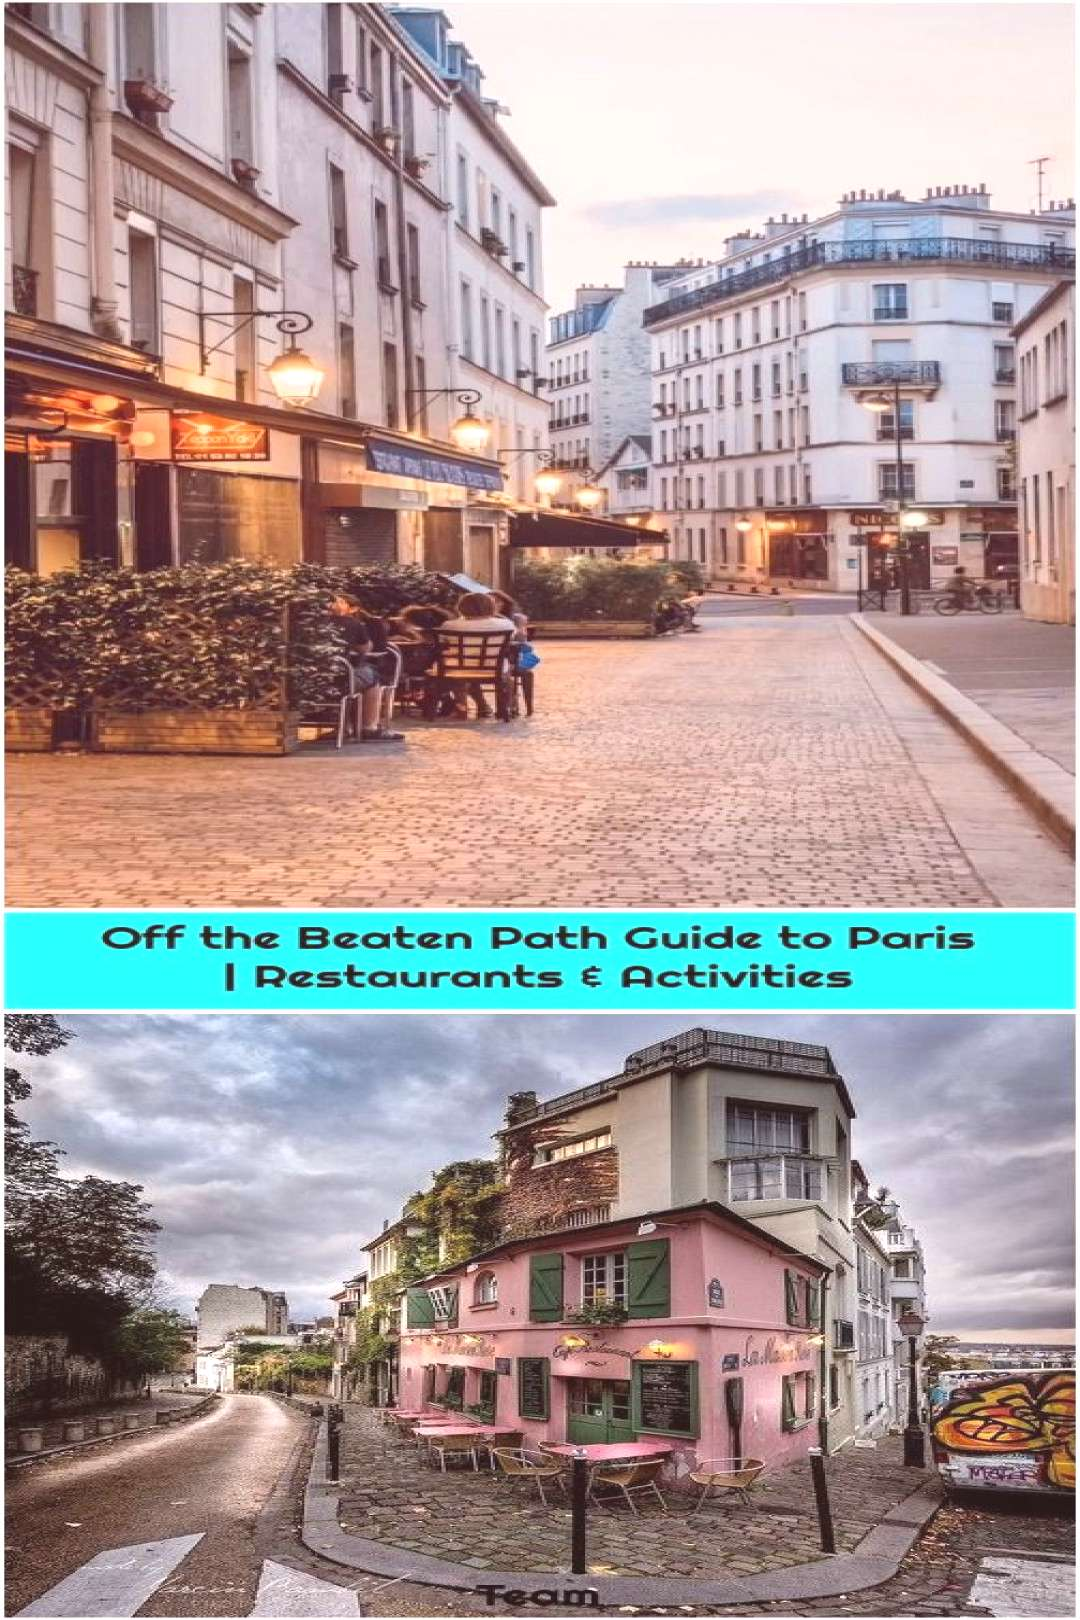 Off the Beaten Path Guide to Paris | Restaurants & Activities 1. Paris – Montmartre Paris – Mon